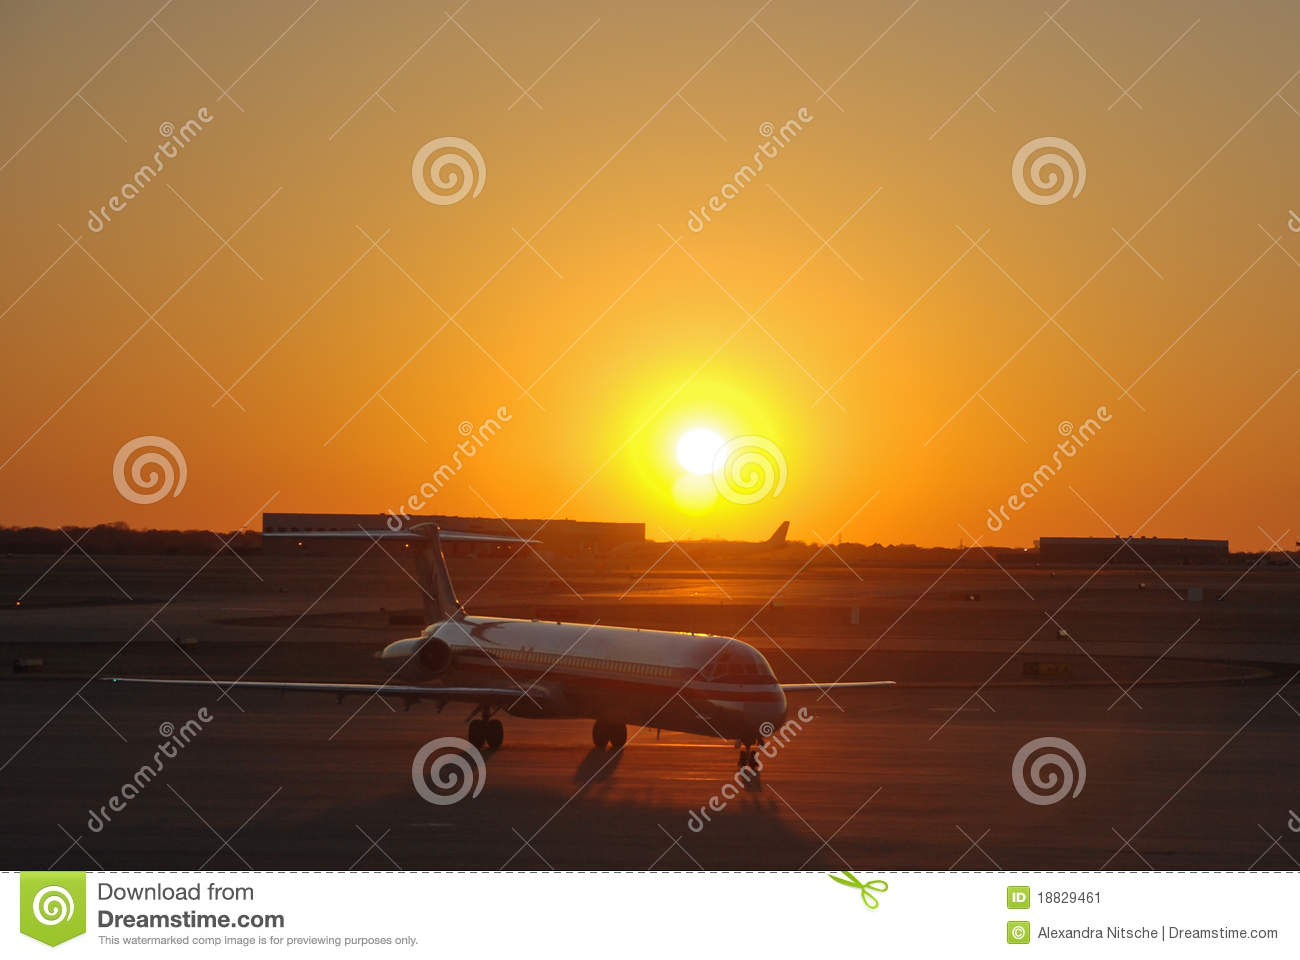 Amercan Airlines Jumbo Jet at Sunset